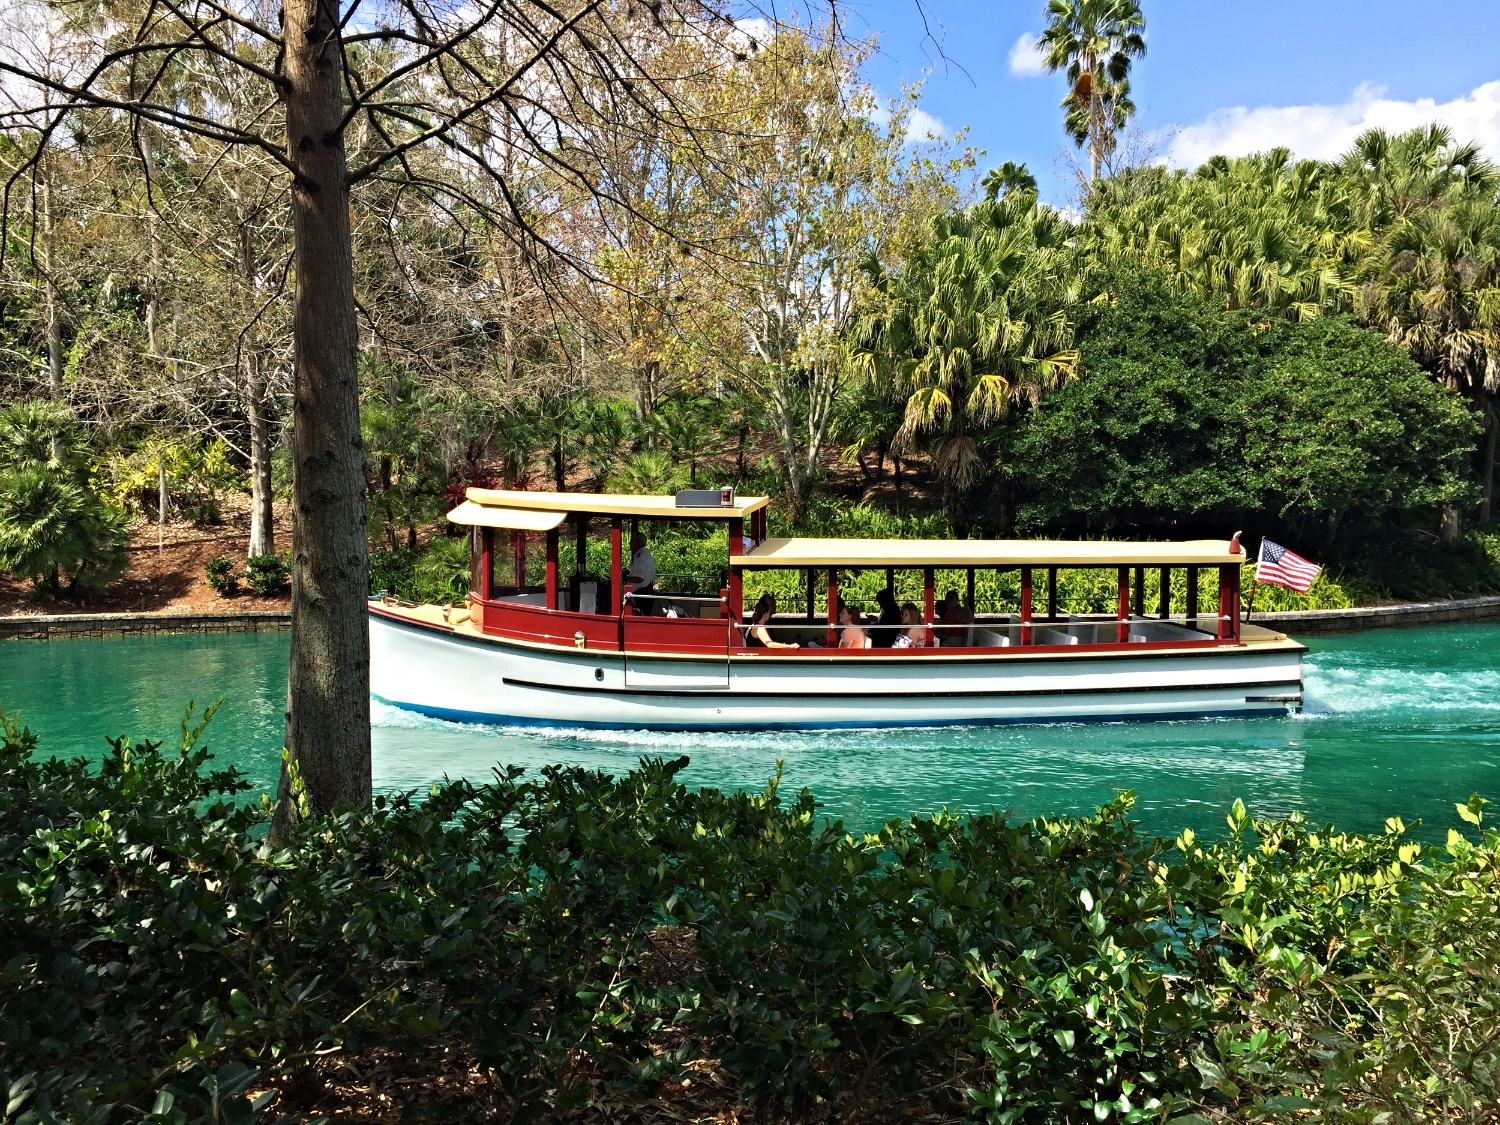 The complimentary water taxi that takes guests from the hotels to CityWalk and from CityWalk to the hotels.